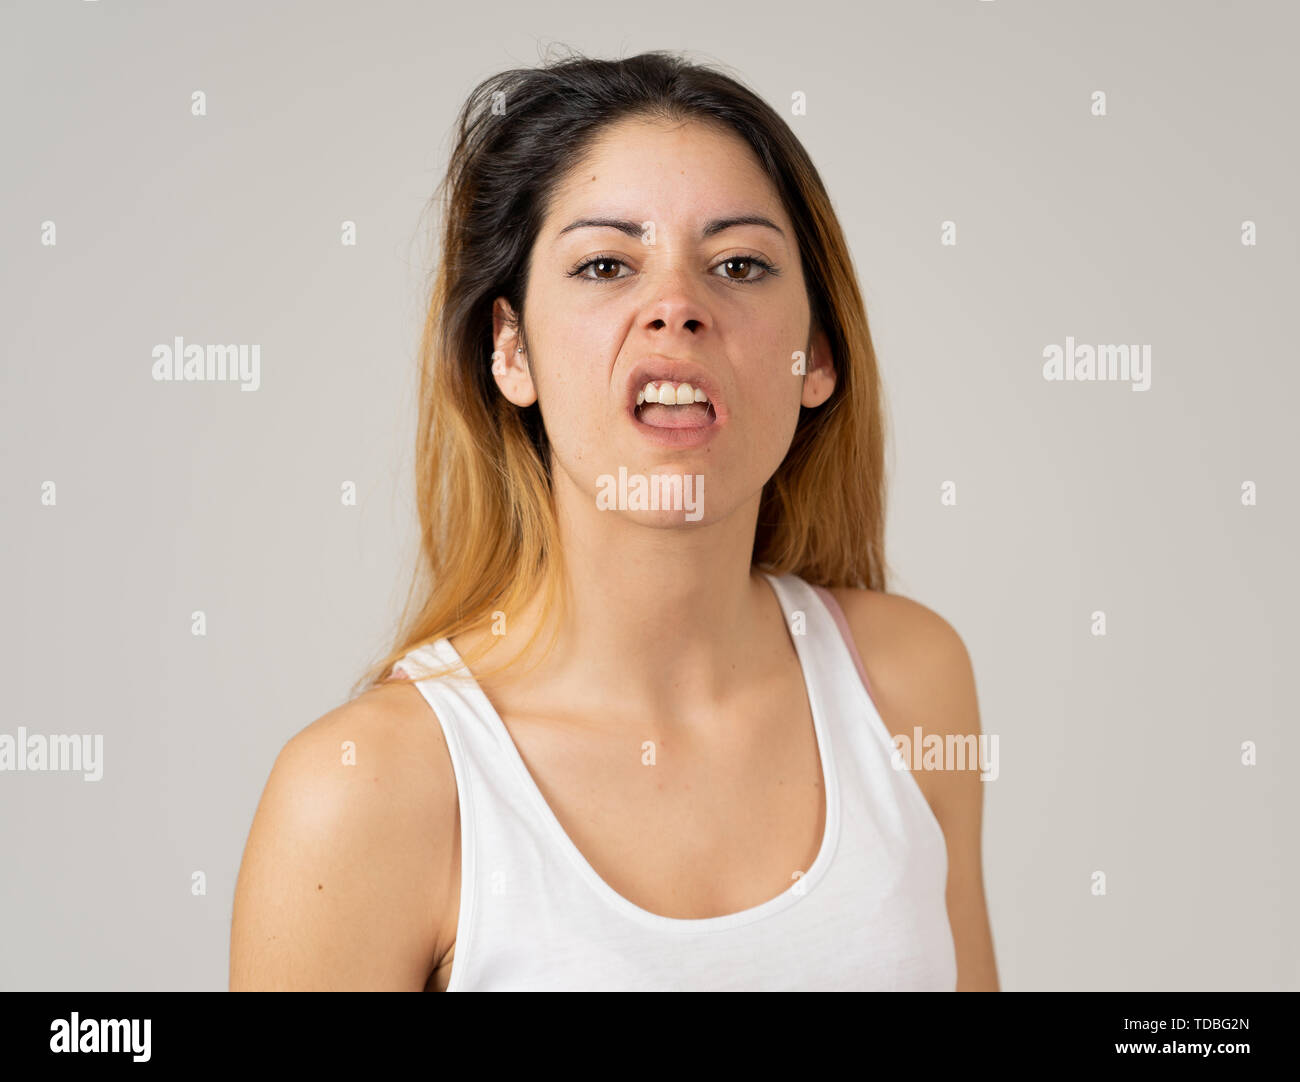 Facial expressions, emotions Anger. Young attractive caucasian woman with angry face. Looking mad and aggressive making furious gestures. Studio portr - Stock Image